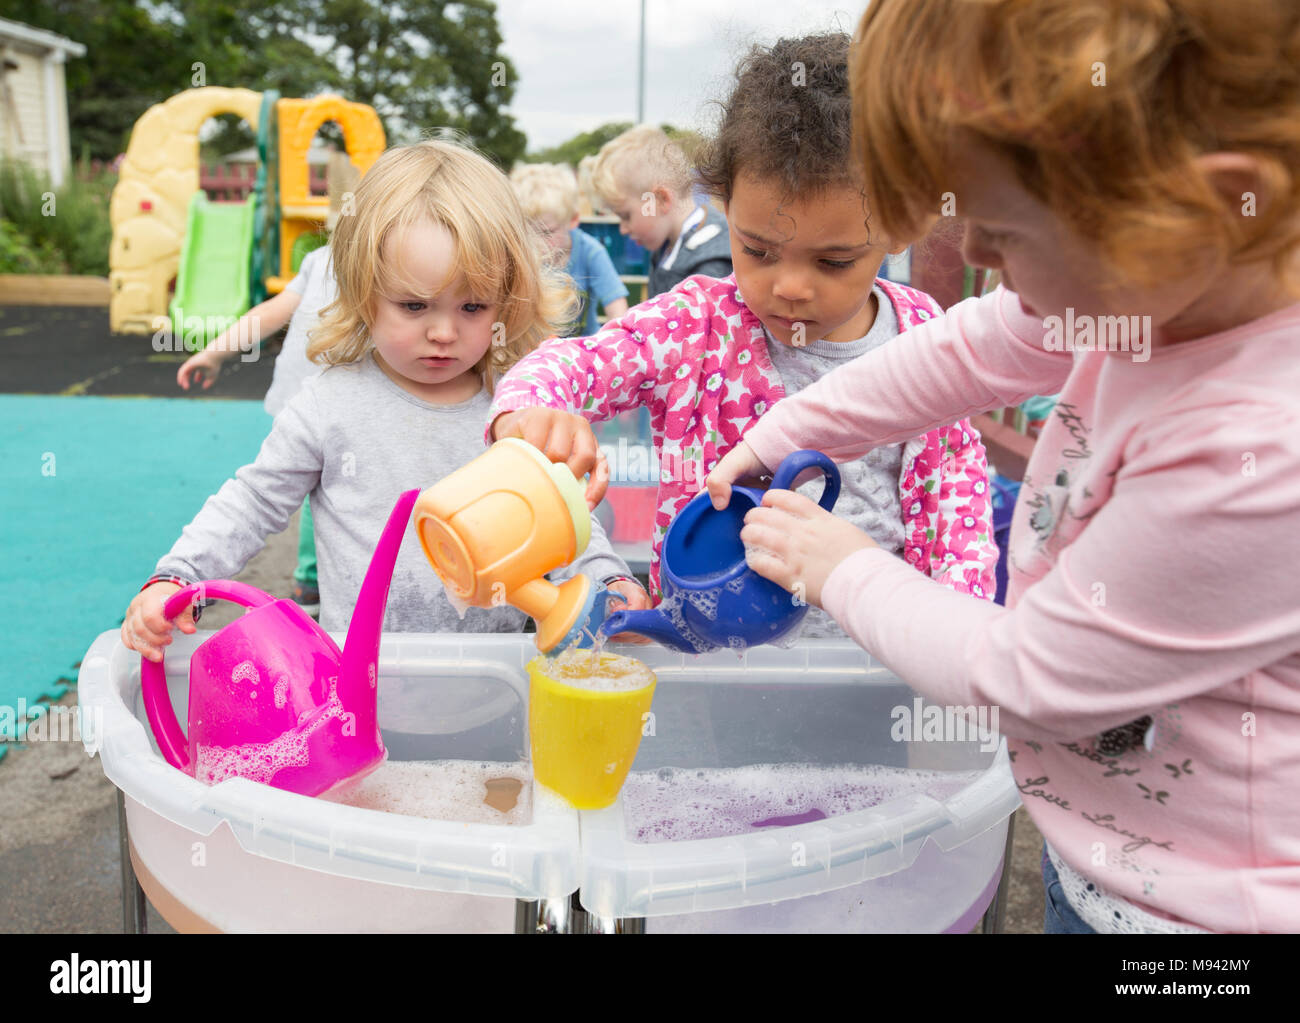 Nursery school children playing in a playground in Warwickshire, UK - Stock Image